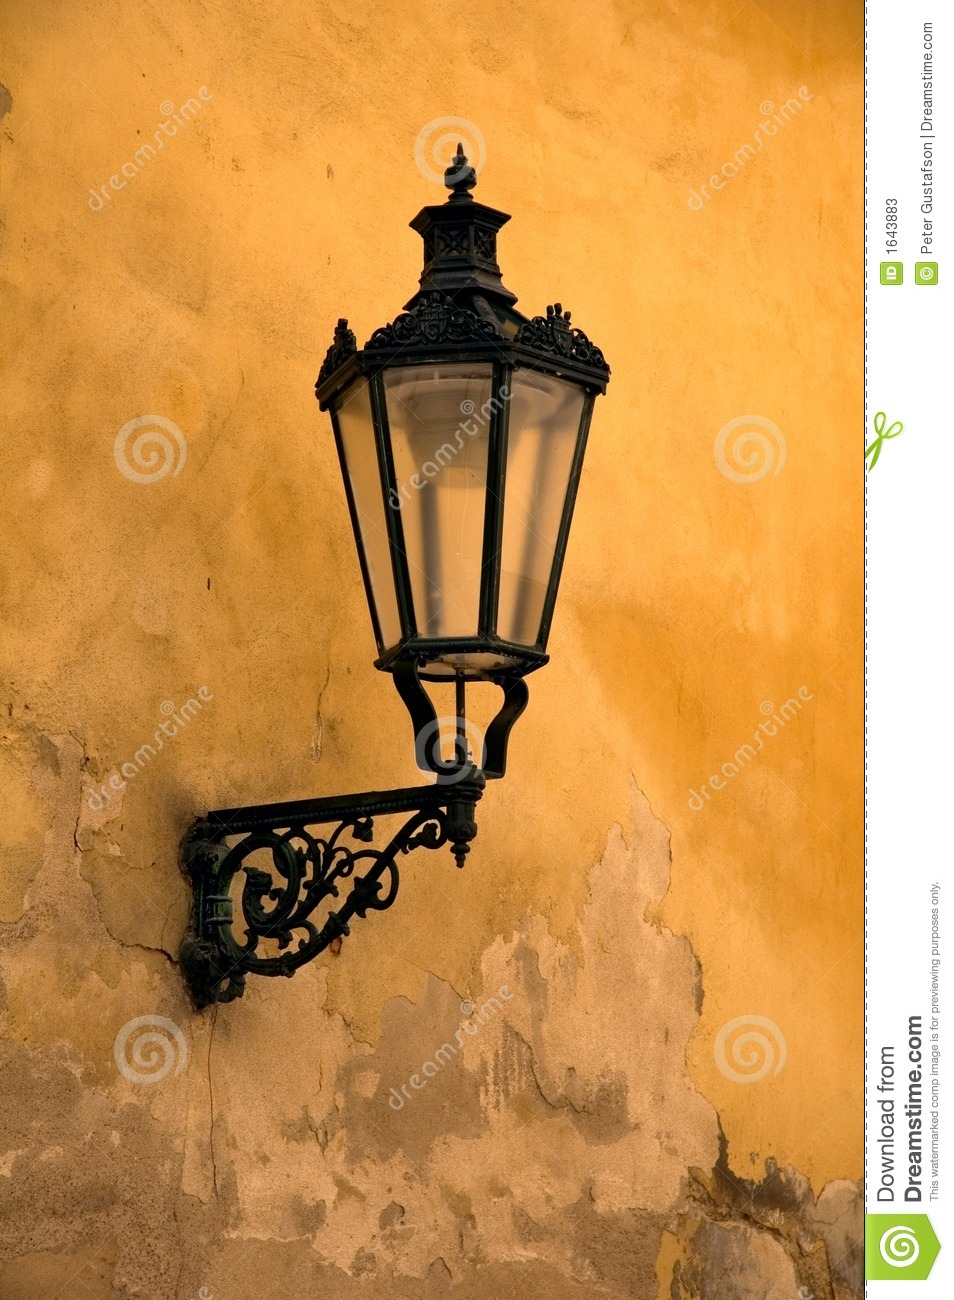 Lamp Light Old Wall Lamp Stock Image. Image Of Glass, Square, Eastern